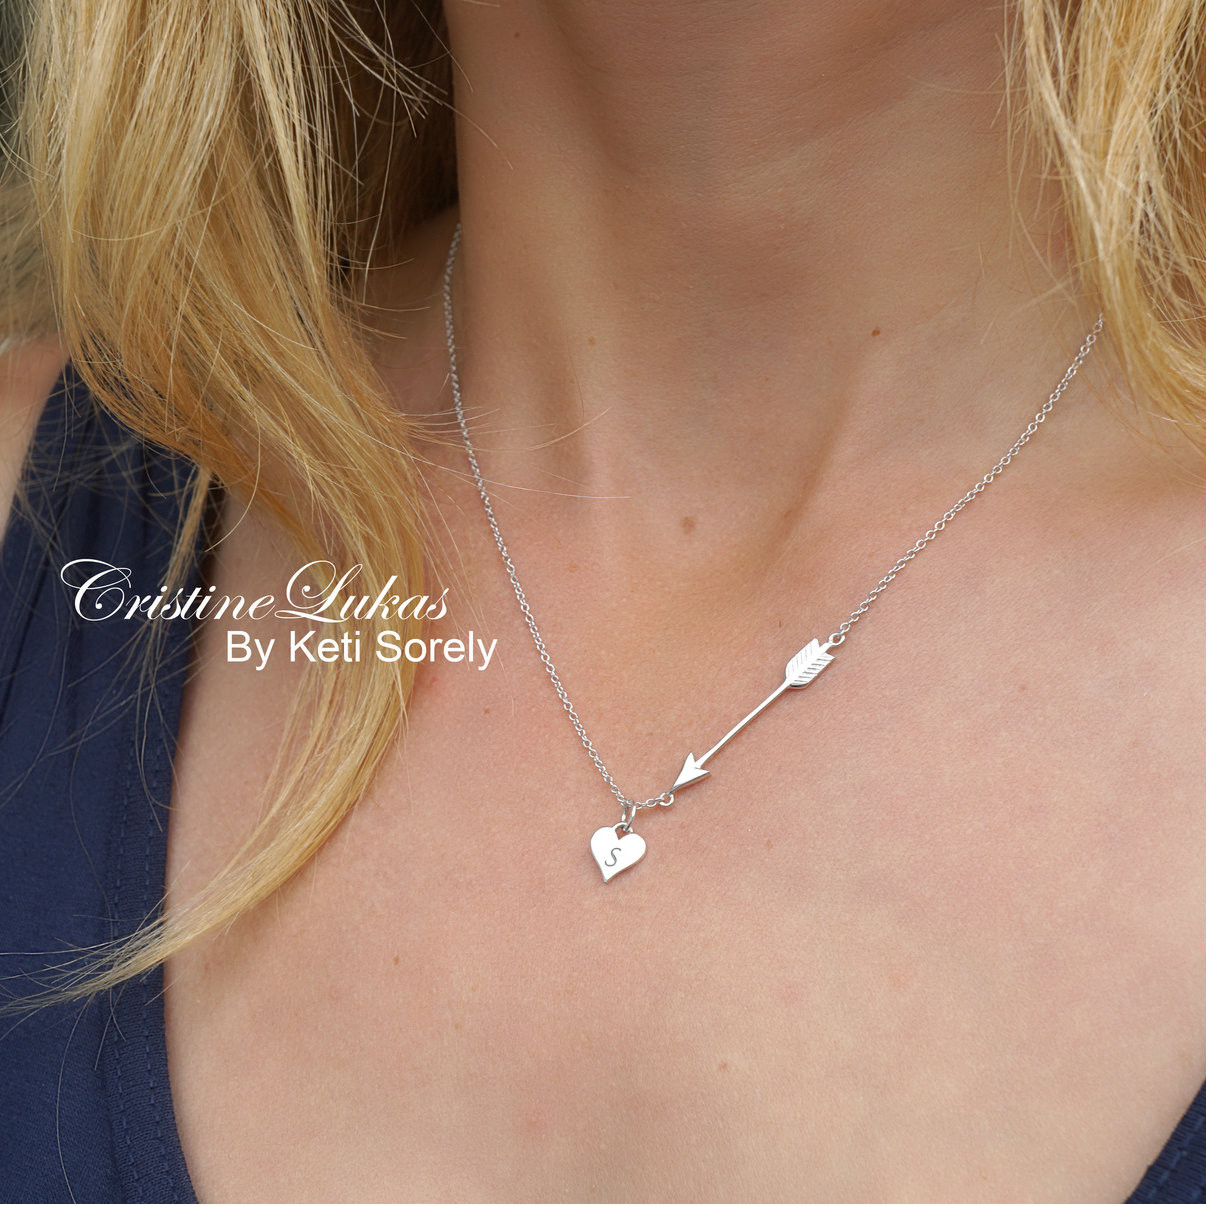 994b603cc037b Heart & Arrow Necklace With engraved Initial In Sterling Silver or Solid  Gold